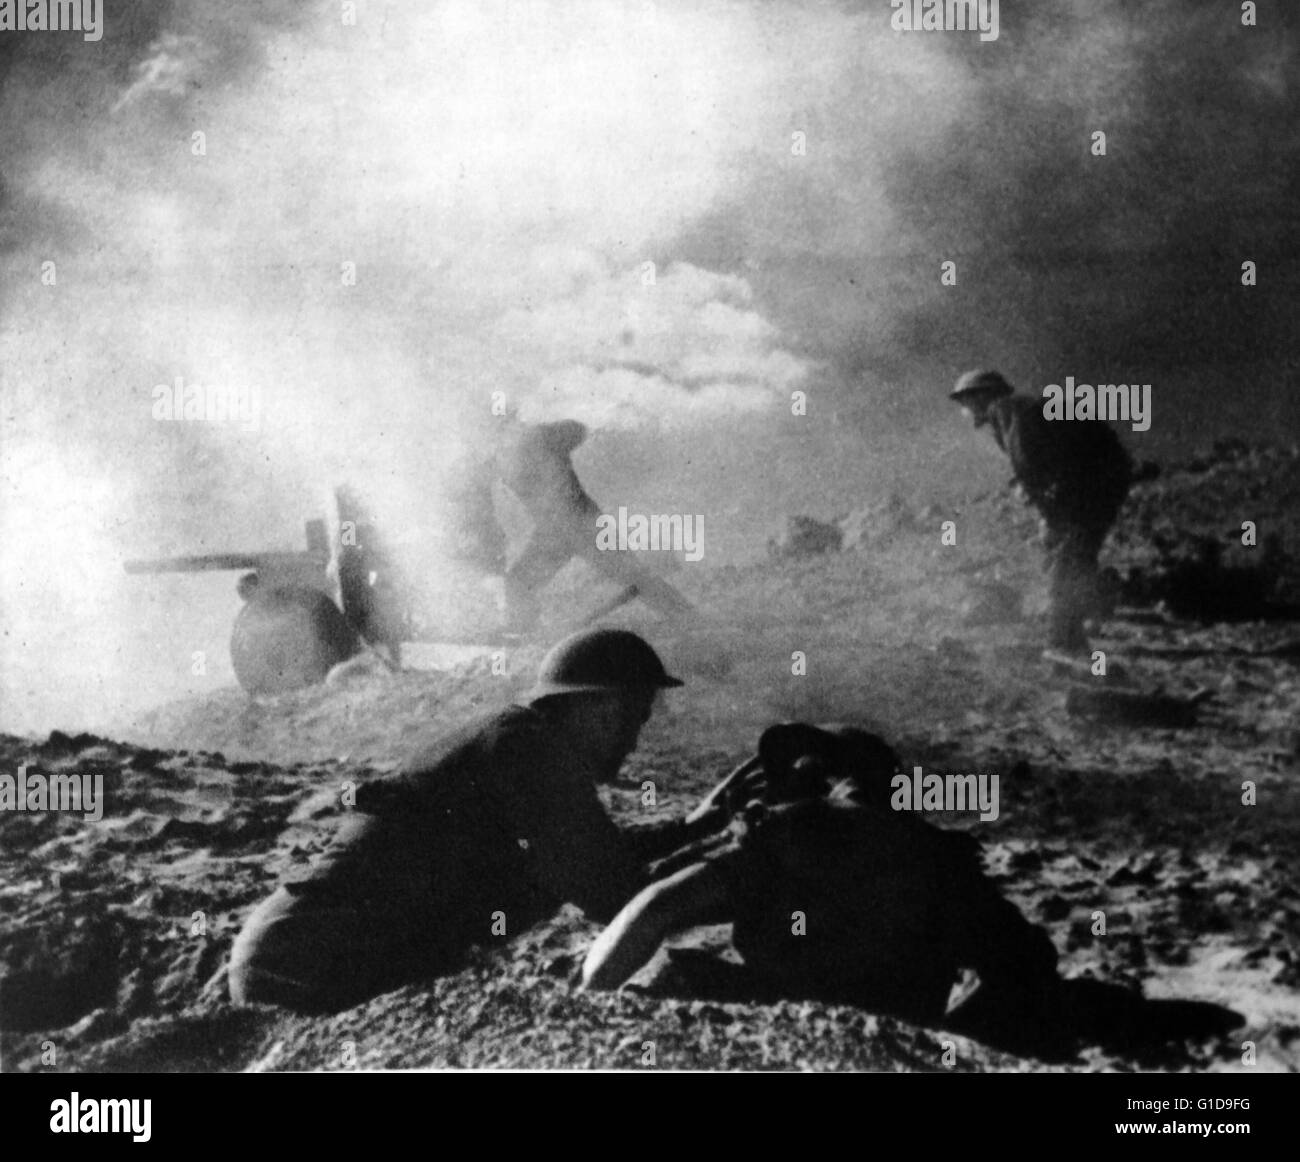 Allied troops in world war II fighting in the Djebel hills in Tunisia campaign 1943. - Stock Image